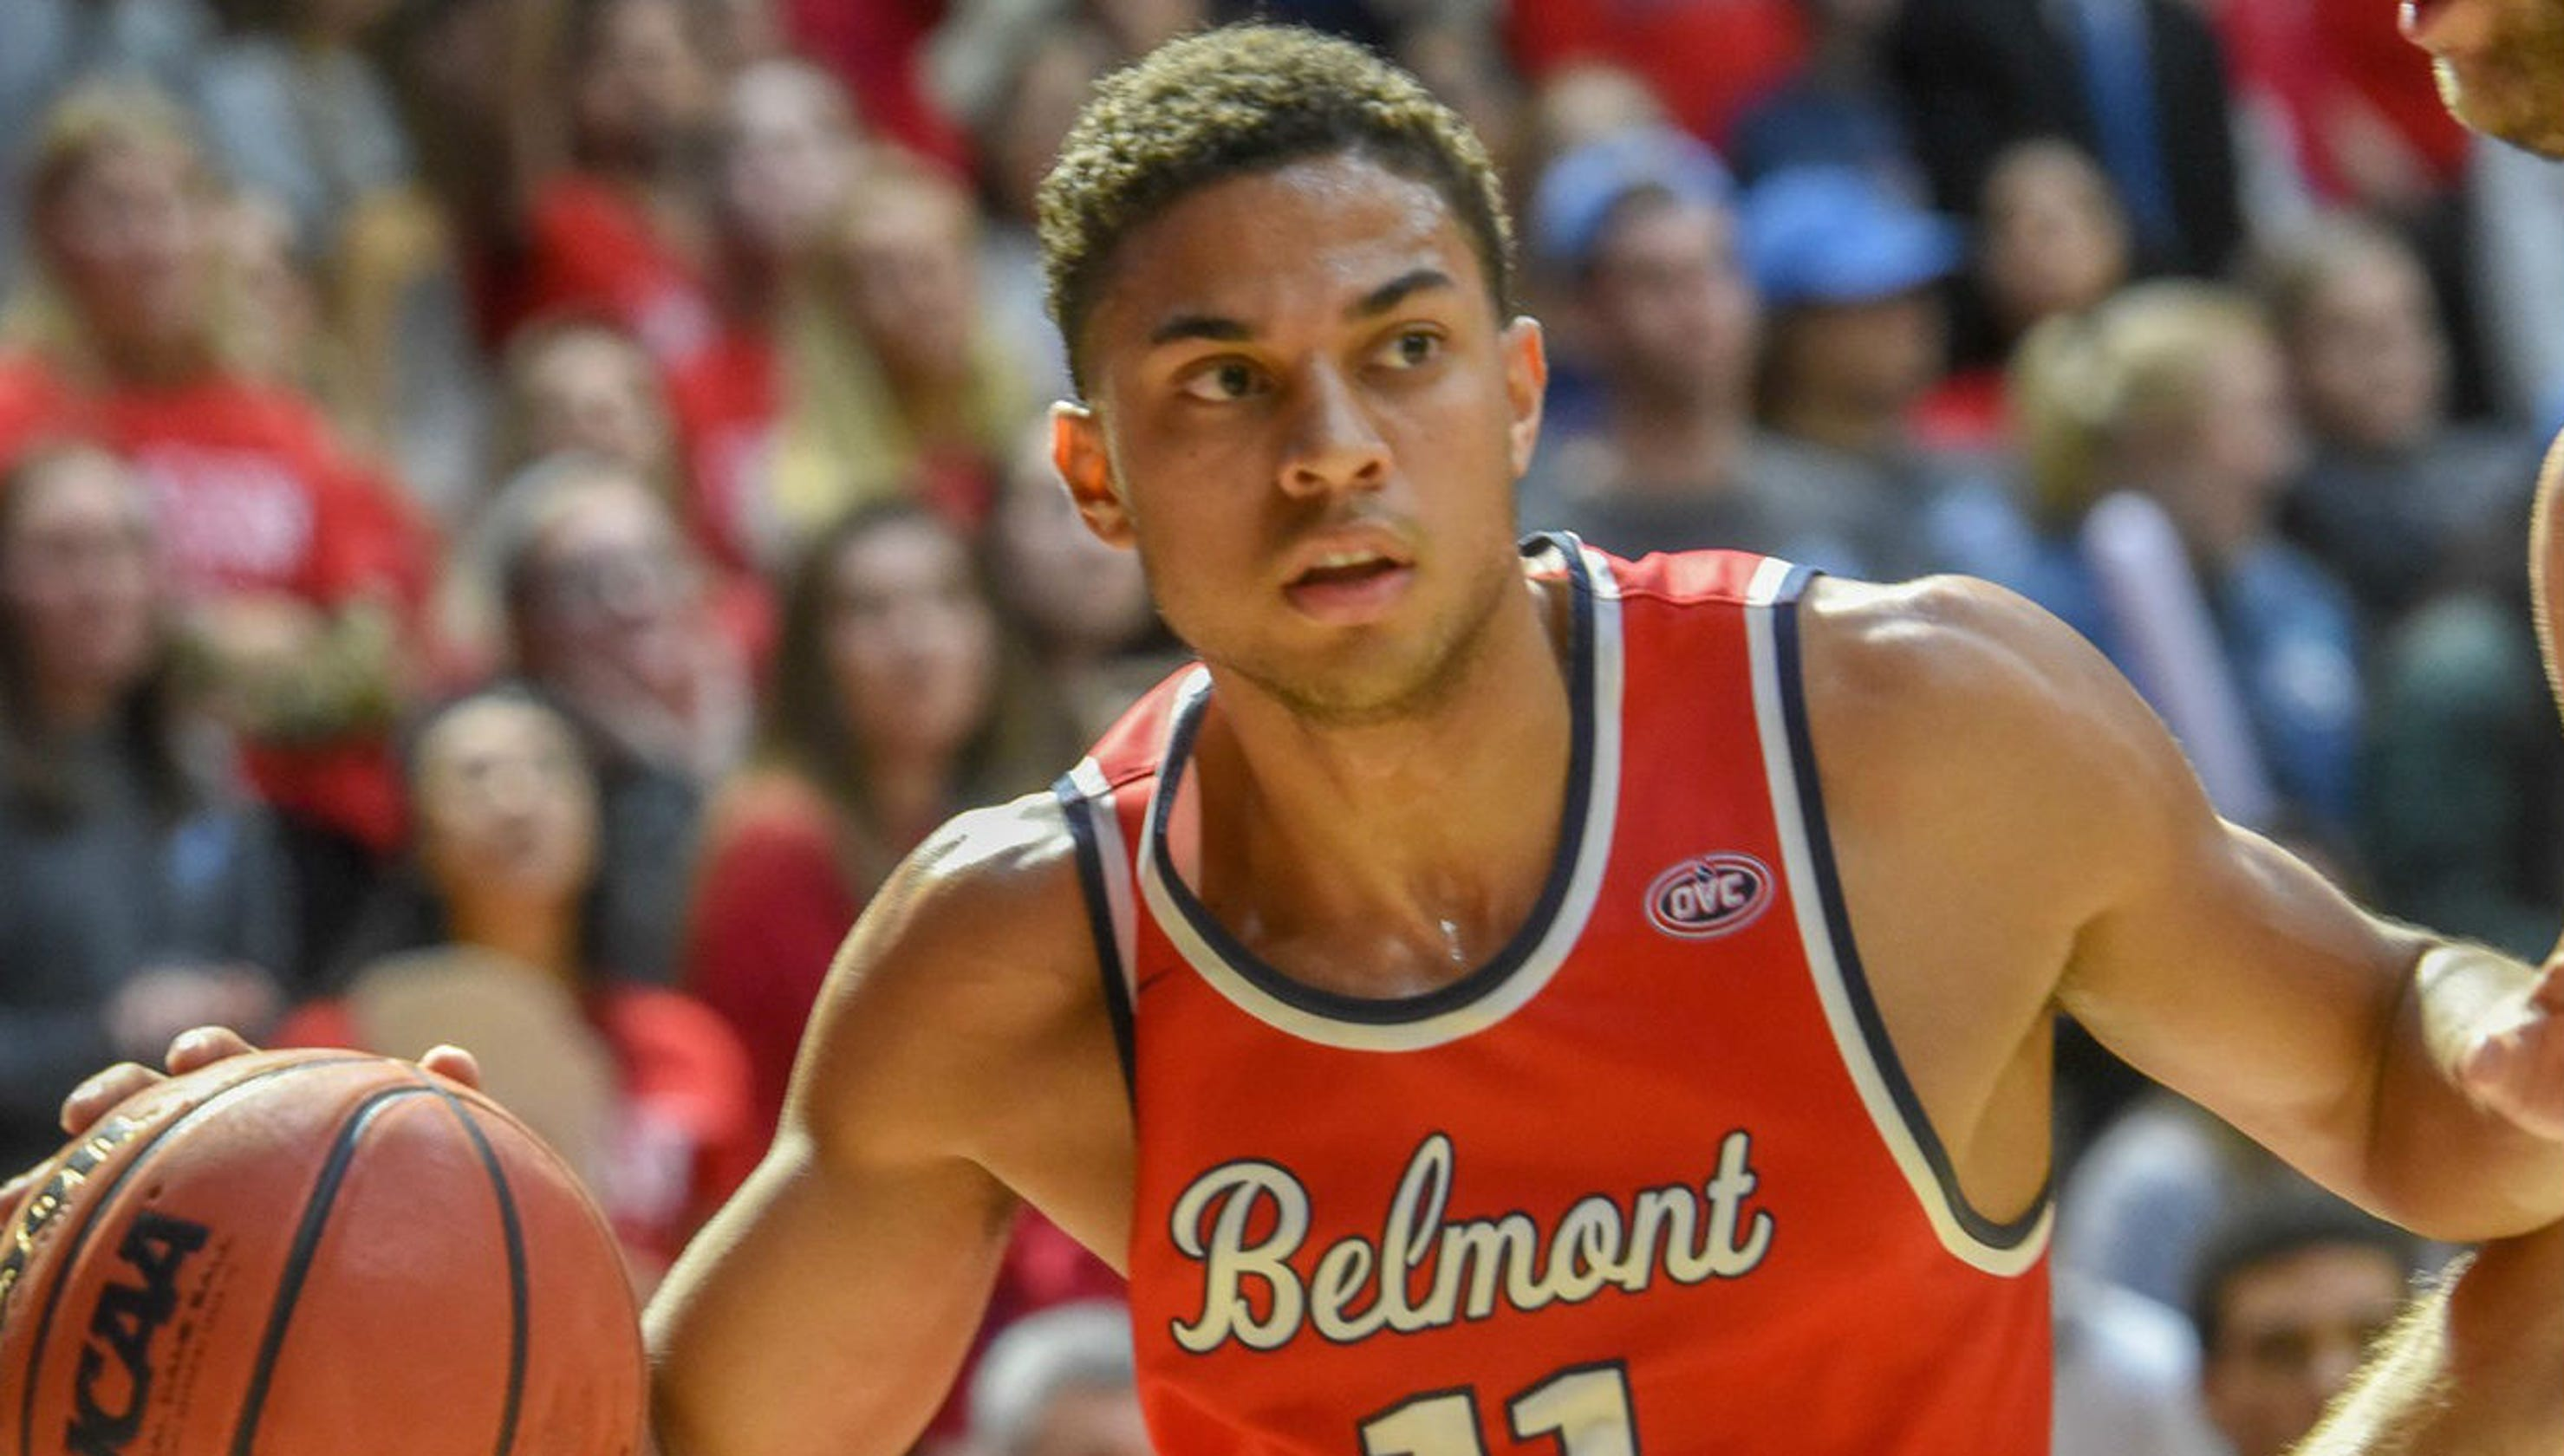 Belmont Steals Spotlight From Ja Morant And Beats Murray State